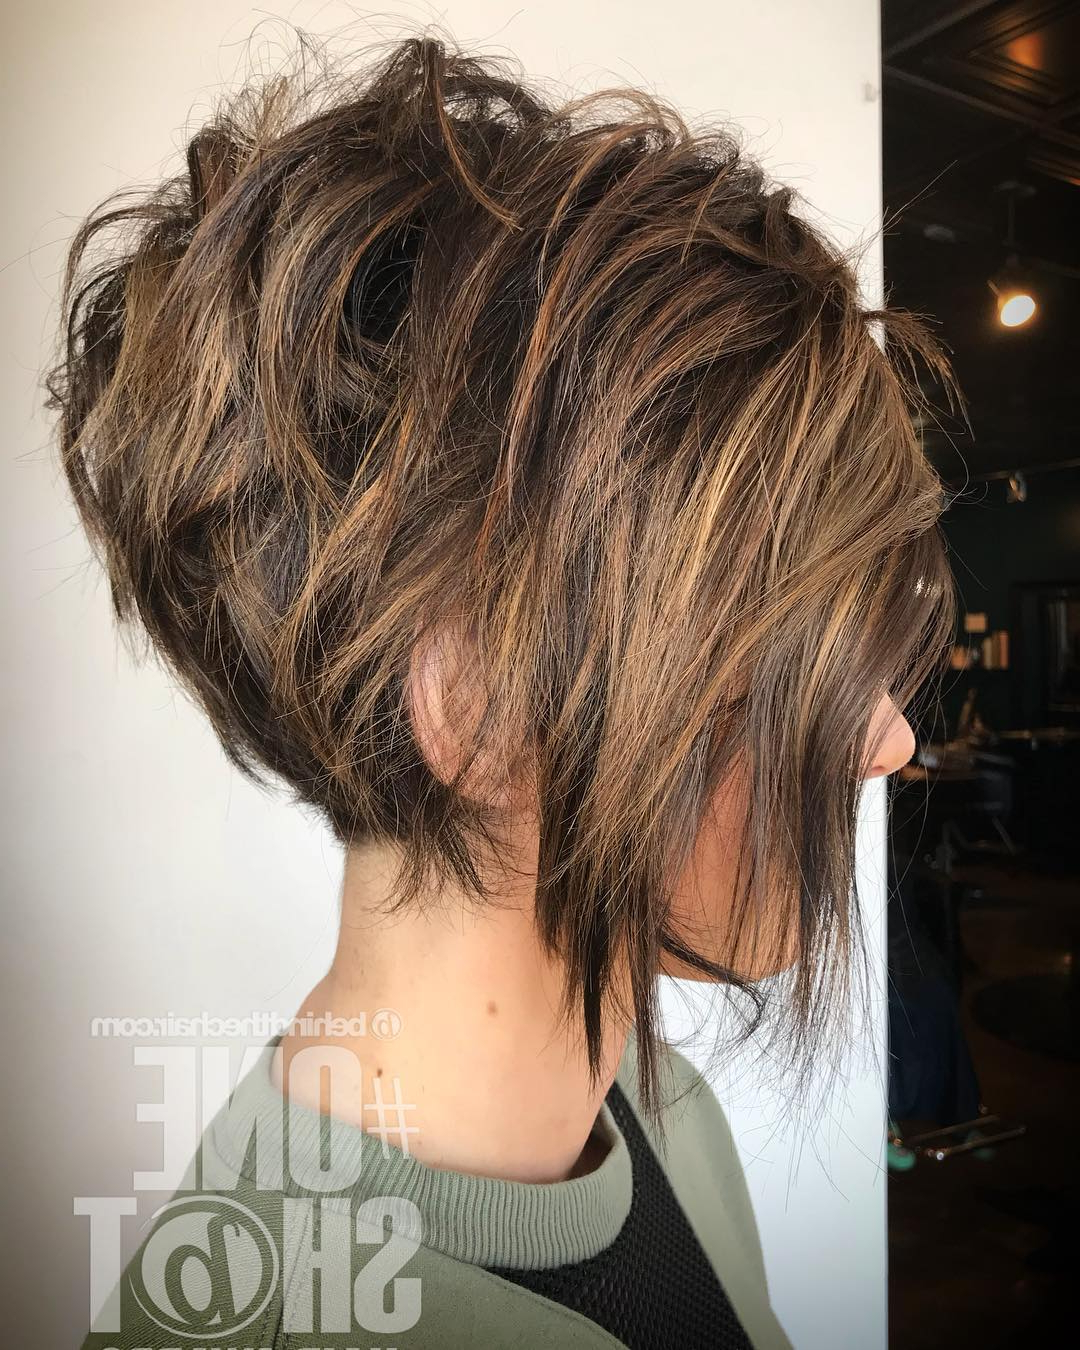 10 Trendy Messy Bob Hairstyles And Haircuts, 2019 Female Short Hair With Regard To Most Up To Date Cute A Line Bob Hairstyles With Volume Towards The Ends (View 3 of 20)